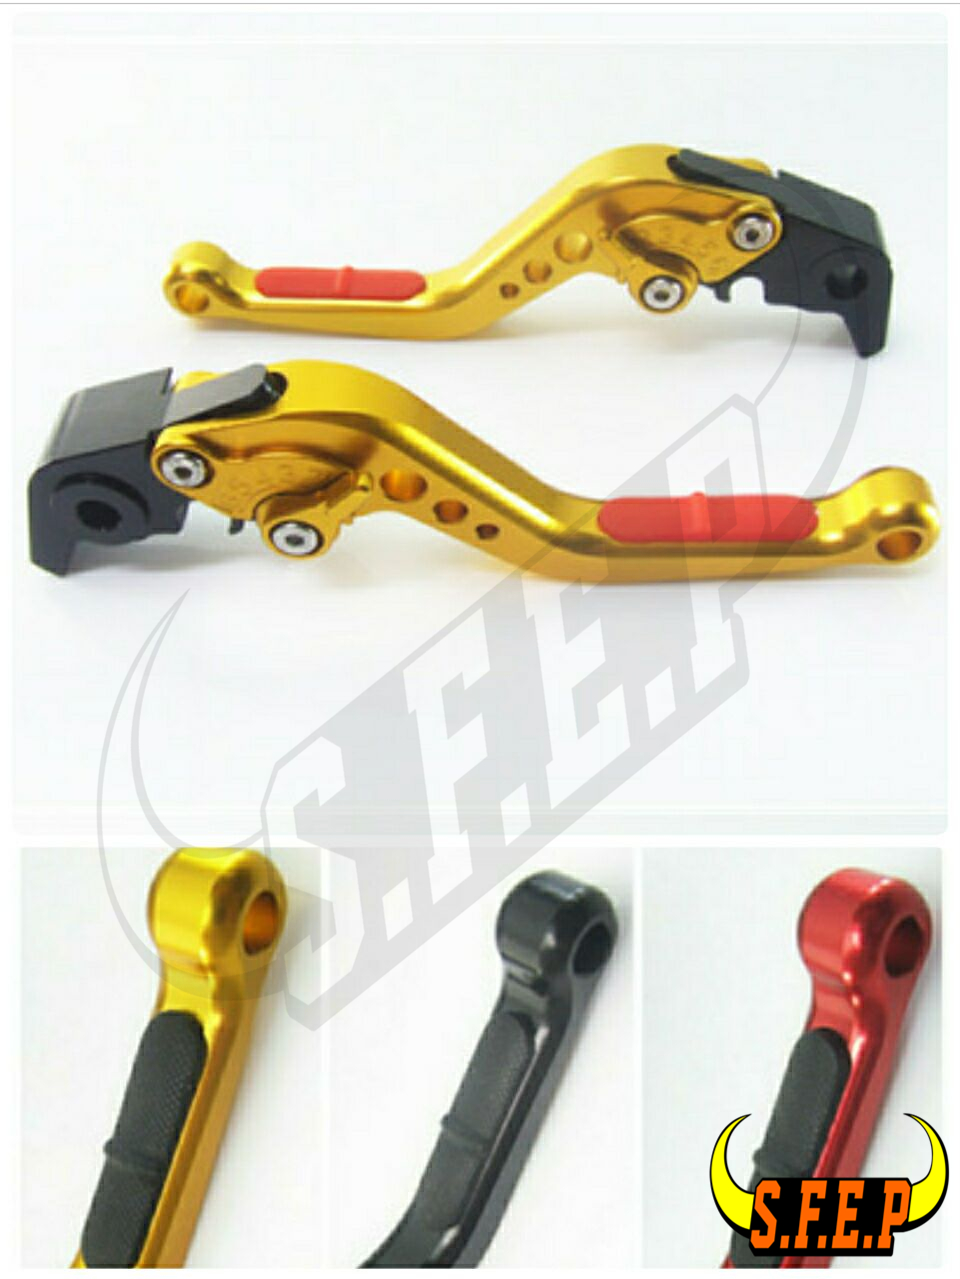 CNC Adjustable Motorcycle Brake and Clutch Levers with Anti-Slip For KTM 690 SMC/SMC-R/Duke/Duke R 2012-2013